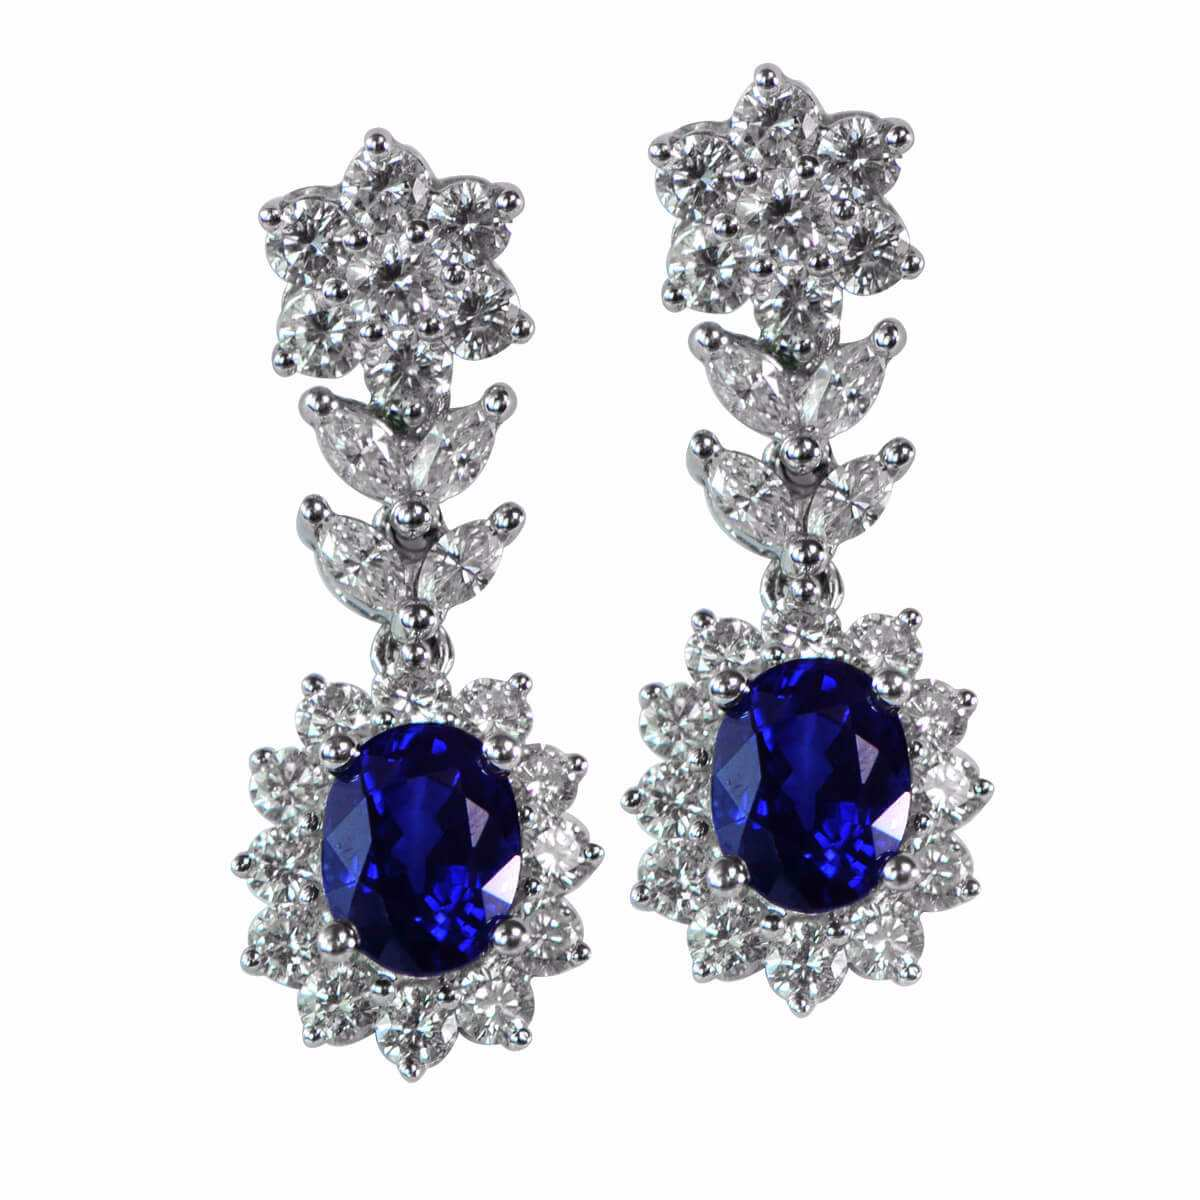 earring blue earrings saphire dh perfect sapphire perfectjewelry natural sterling silver drop product from real jewelry